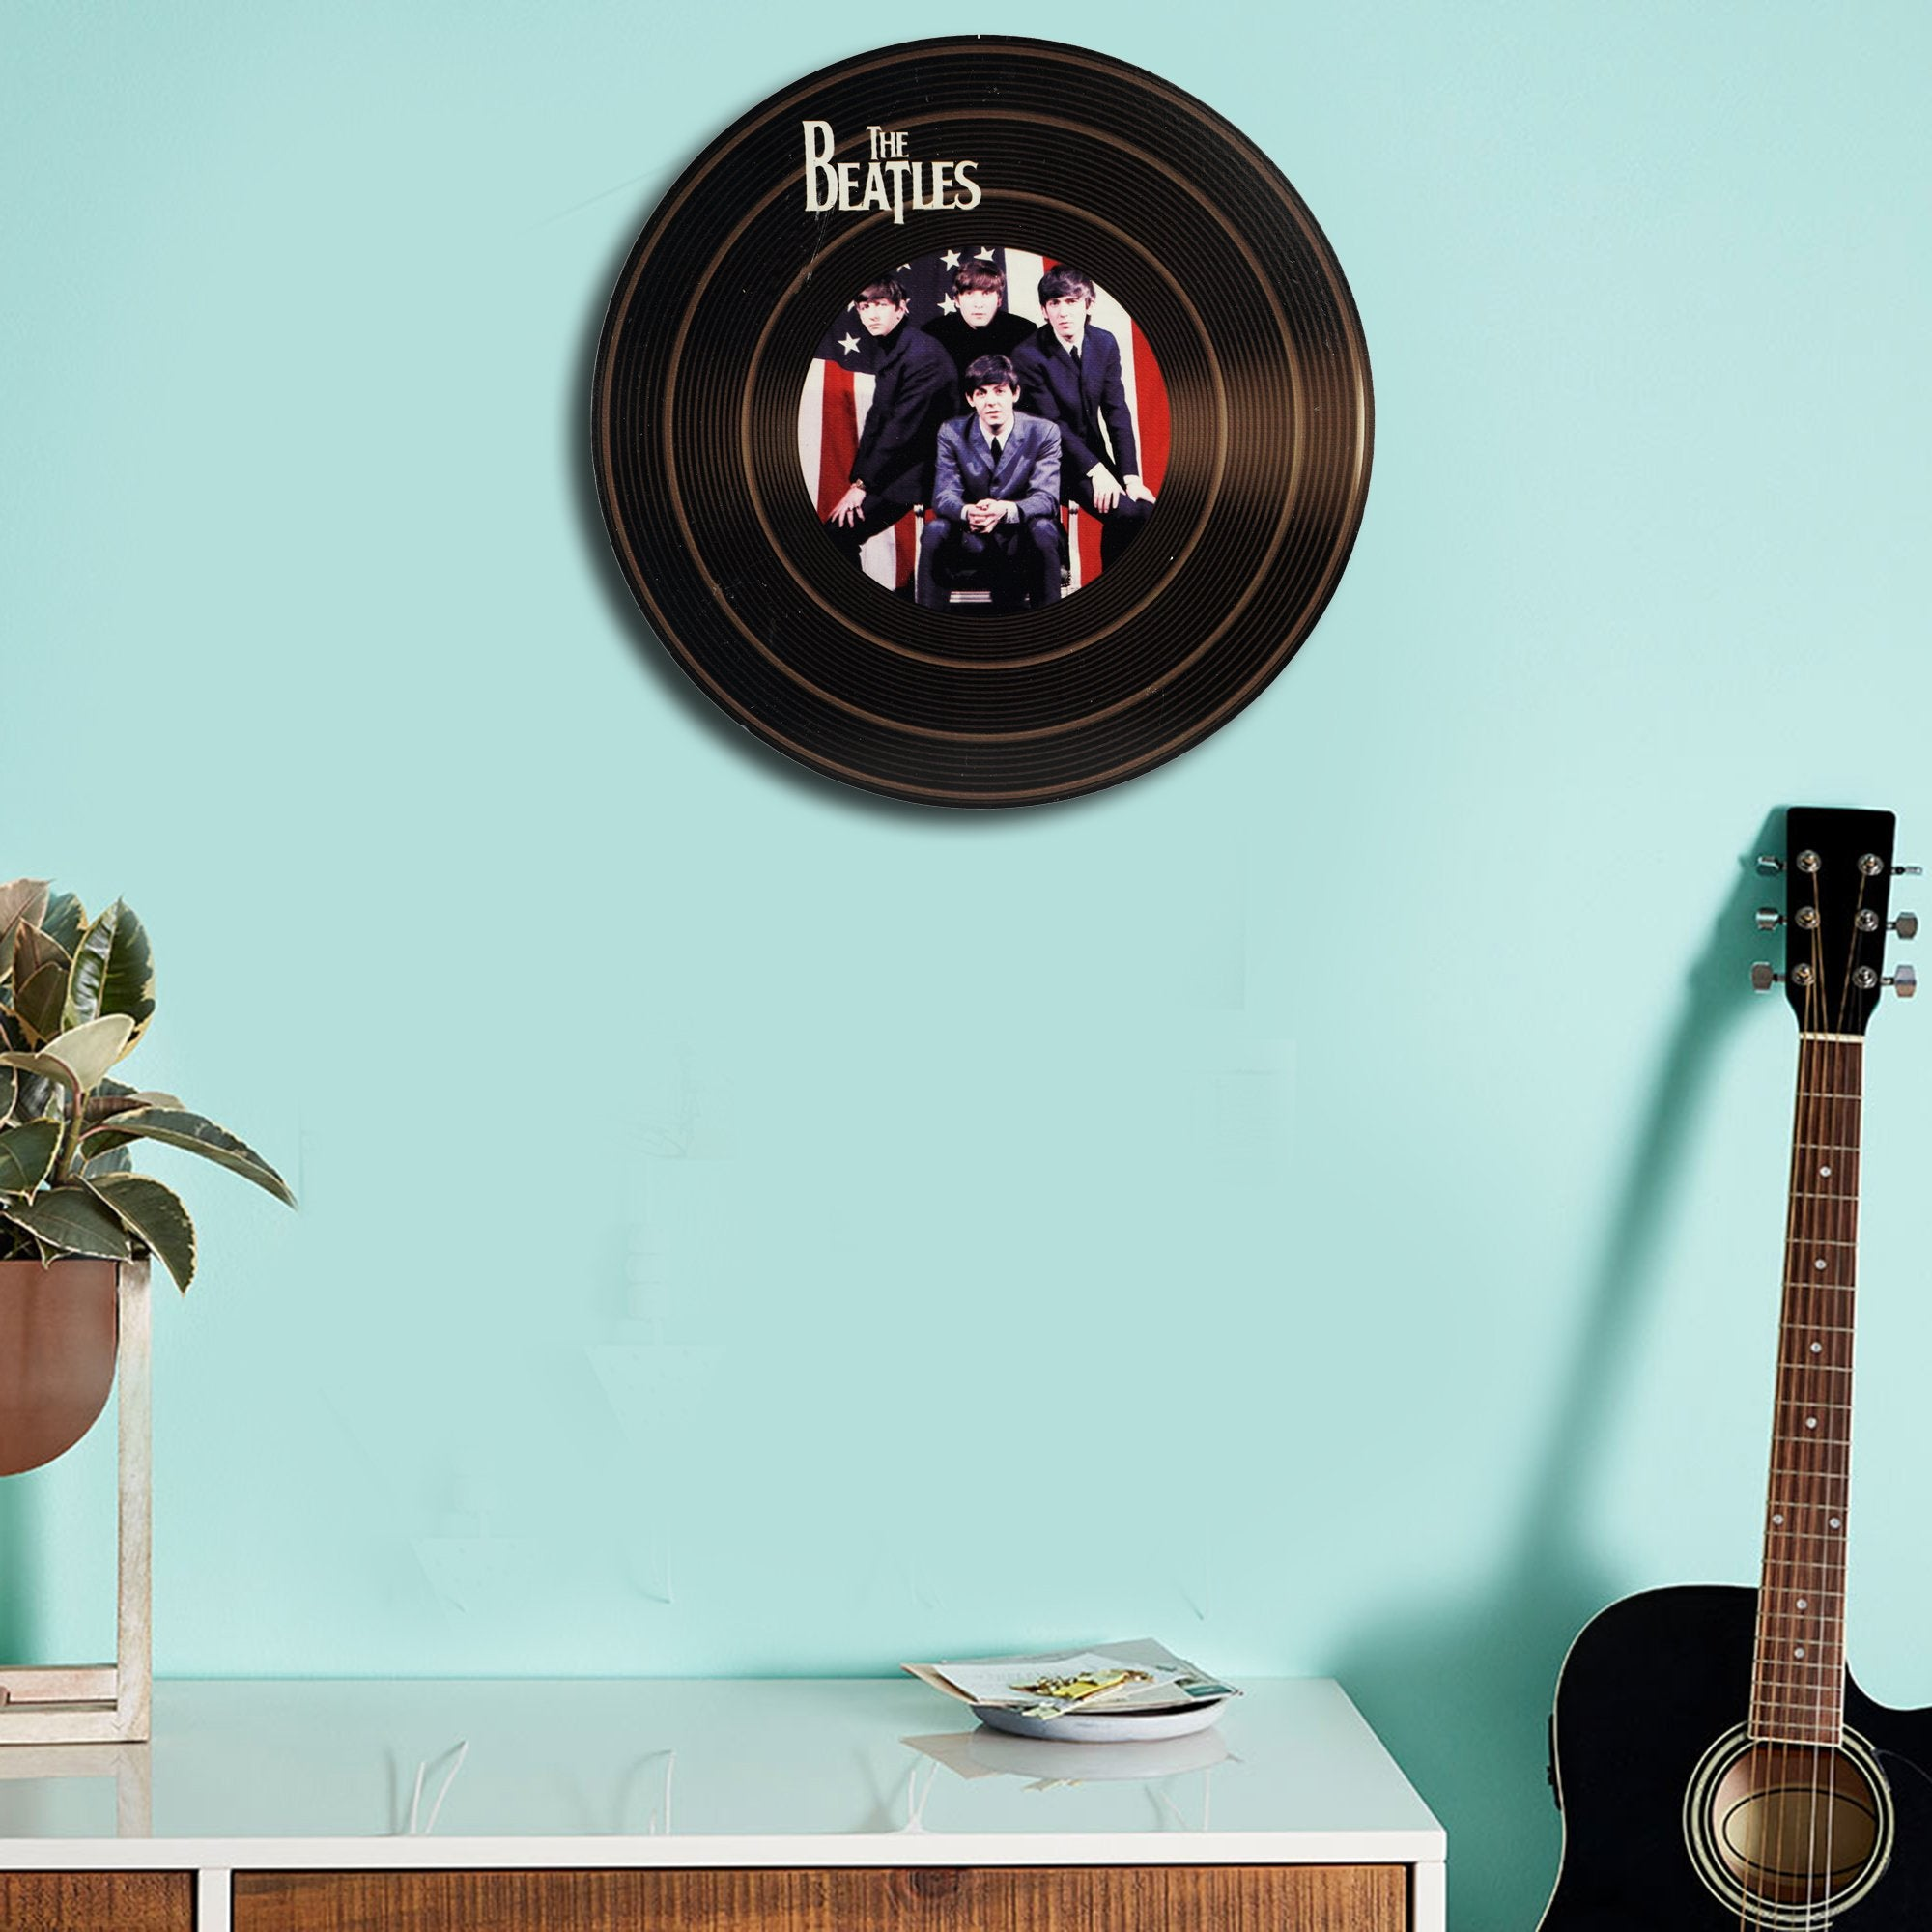 The Beatles Record Wall Disc